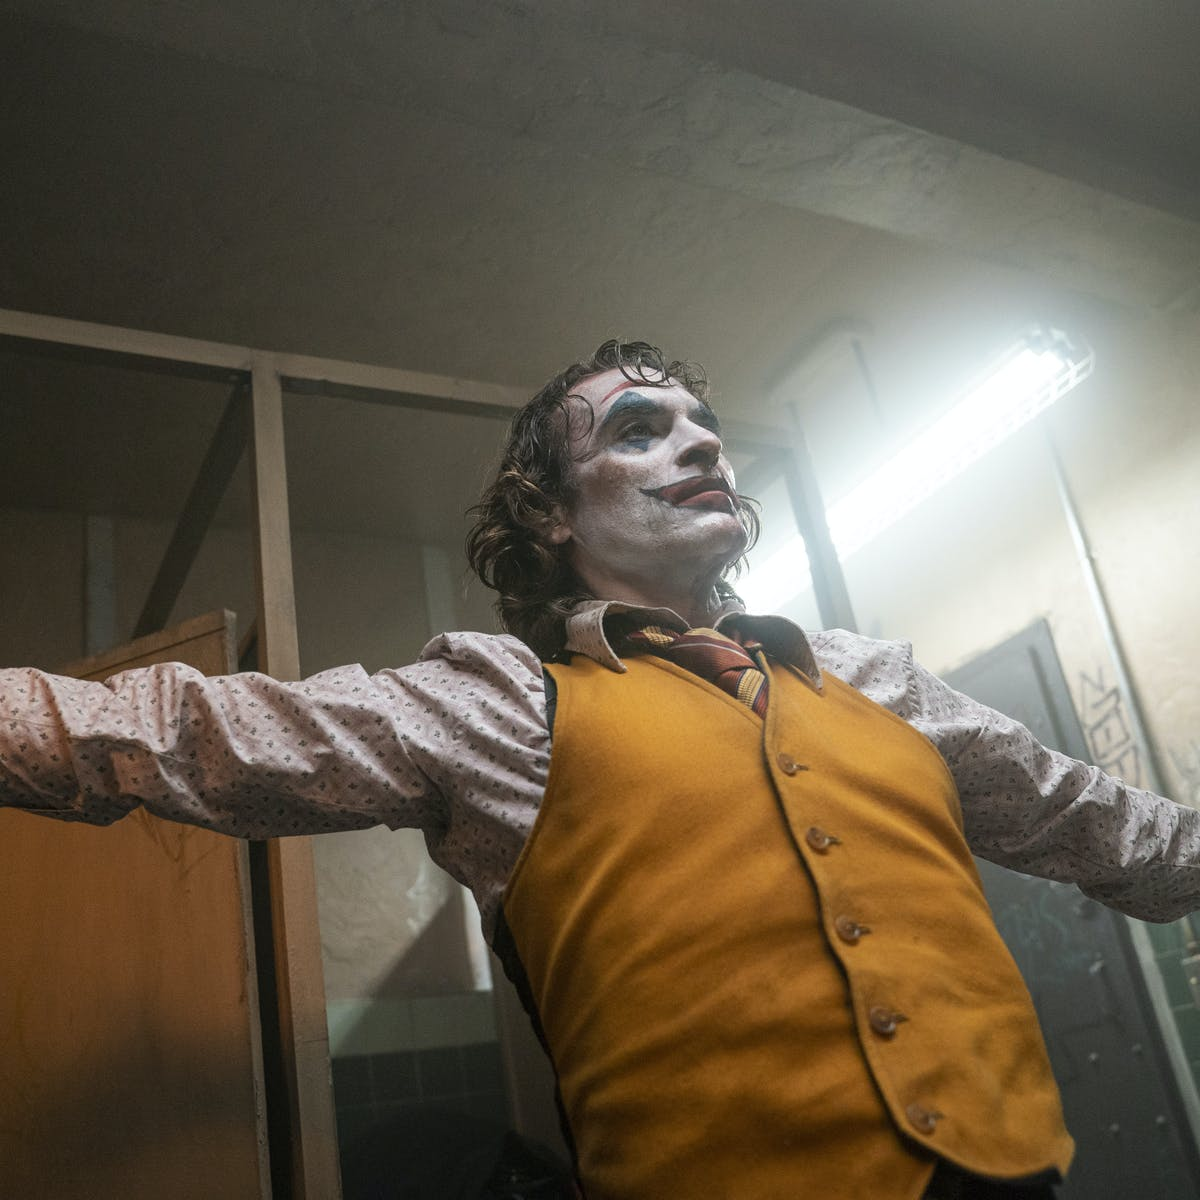 'Joker' sequel could launch a new, darker DC film franchise